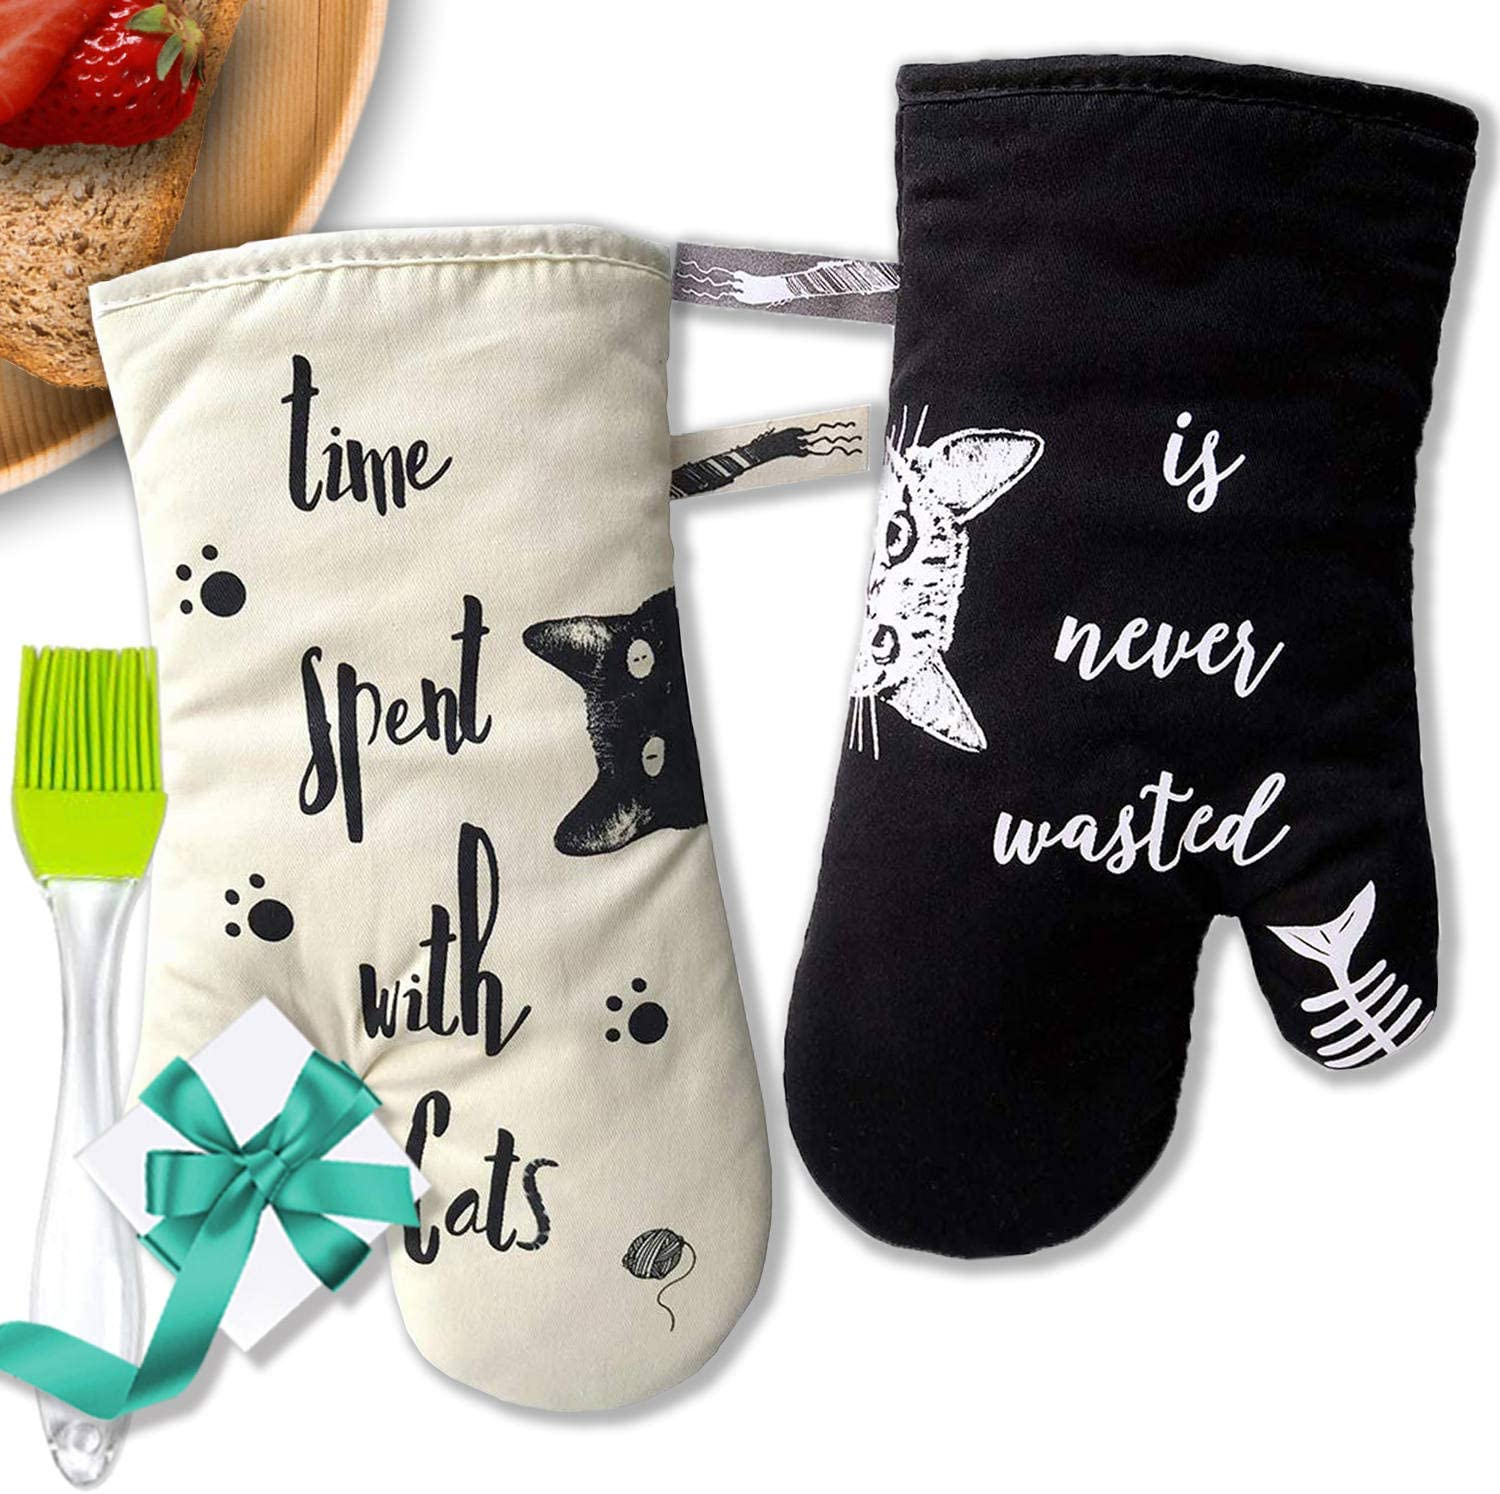 Oven Mitts,Cute Cats &Dogs Oven Mitts,100% Cotton Lining Gloves Cooking Glove Heat Resistant Baking Glove,Funny Gift Friends,Potholder Kitchen Gloves,BBQ Gloves 1 Pair (Cute Cats)